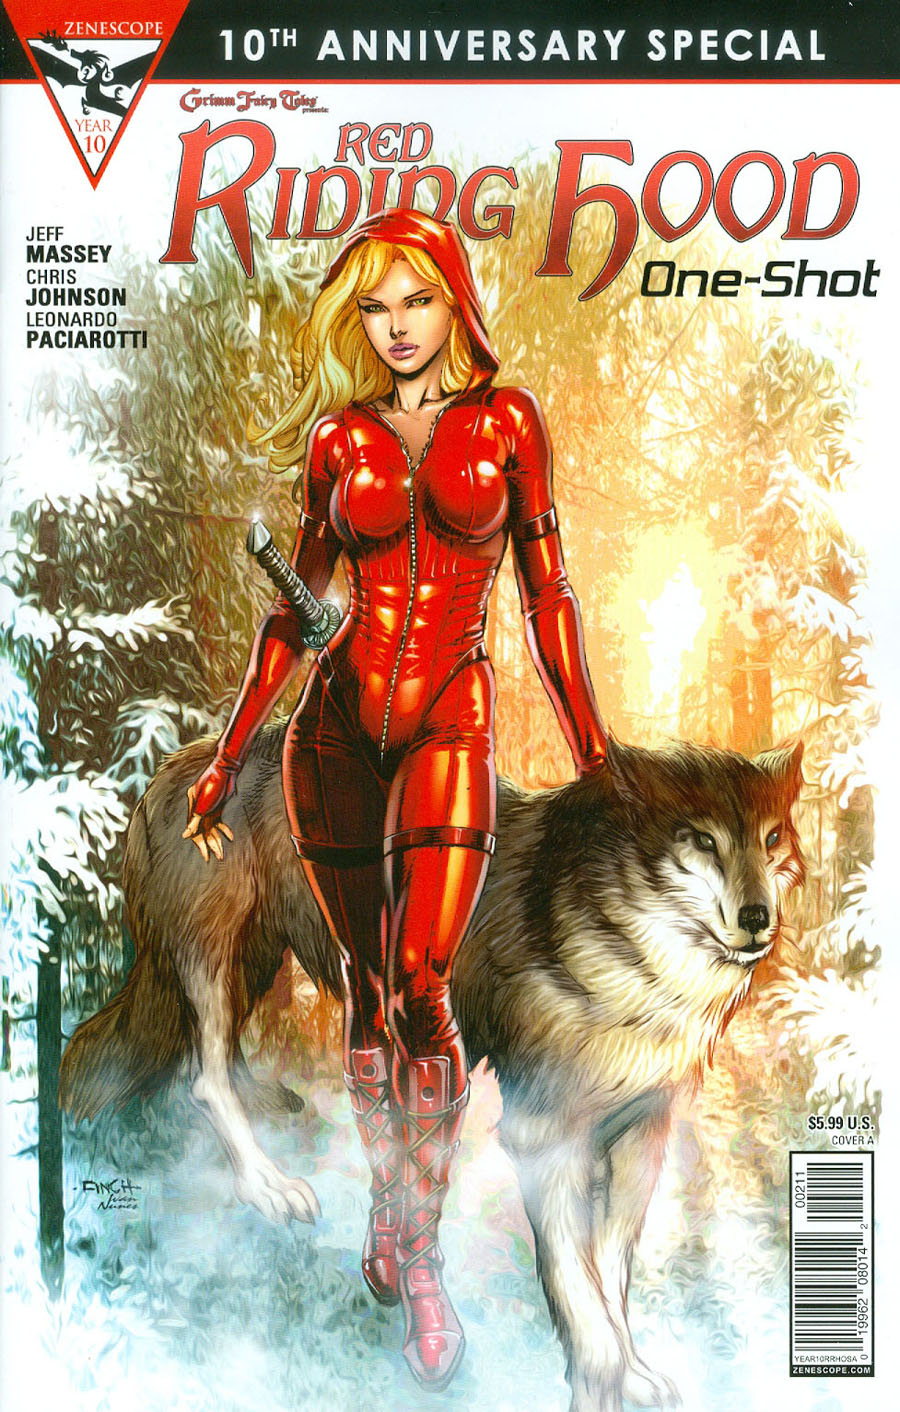 Grimm Fairy Tales Presents 10th Anniversary Special #2 Red Riding Hood Cover A David Finch